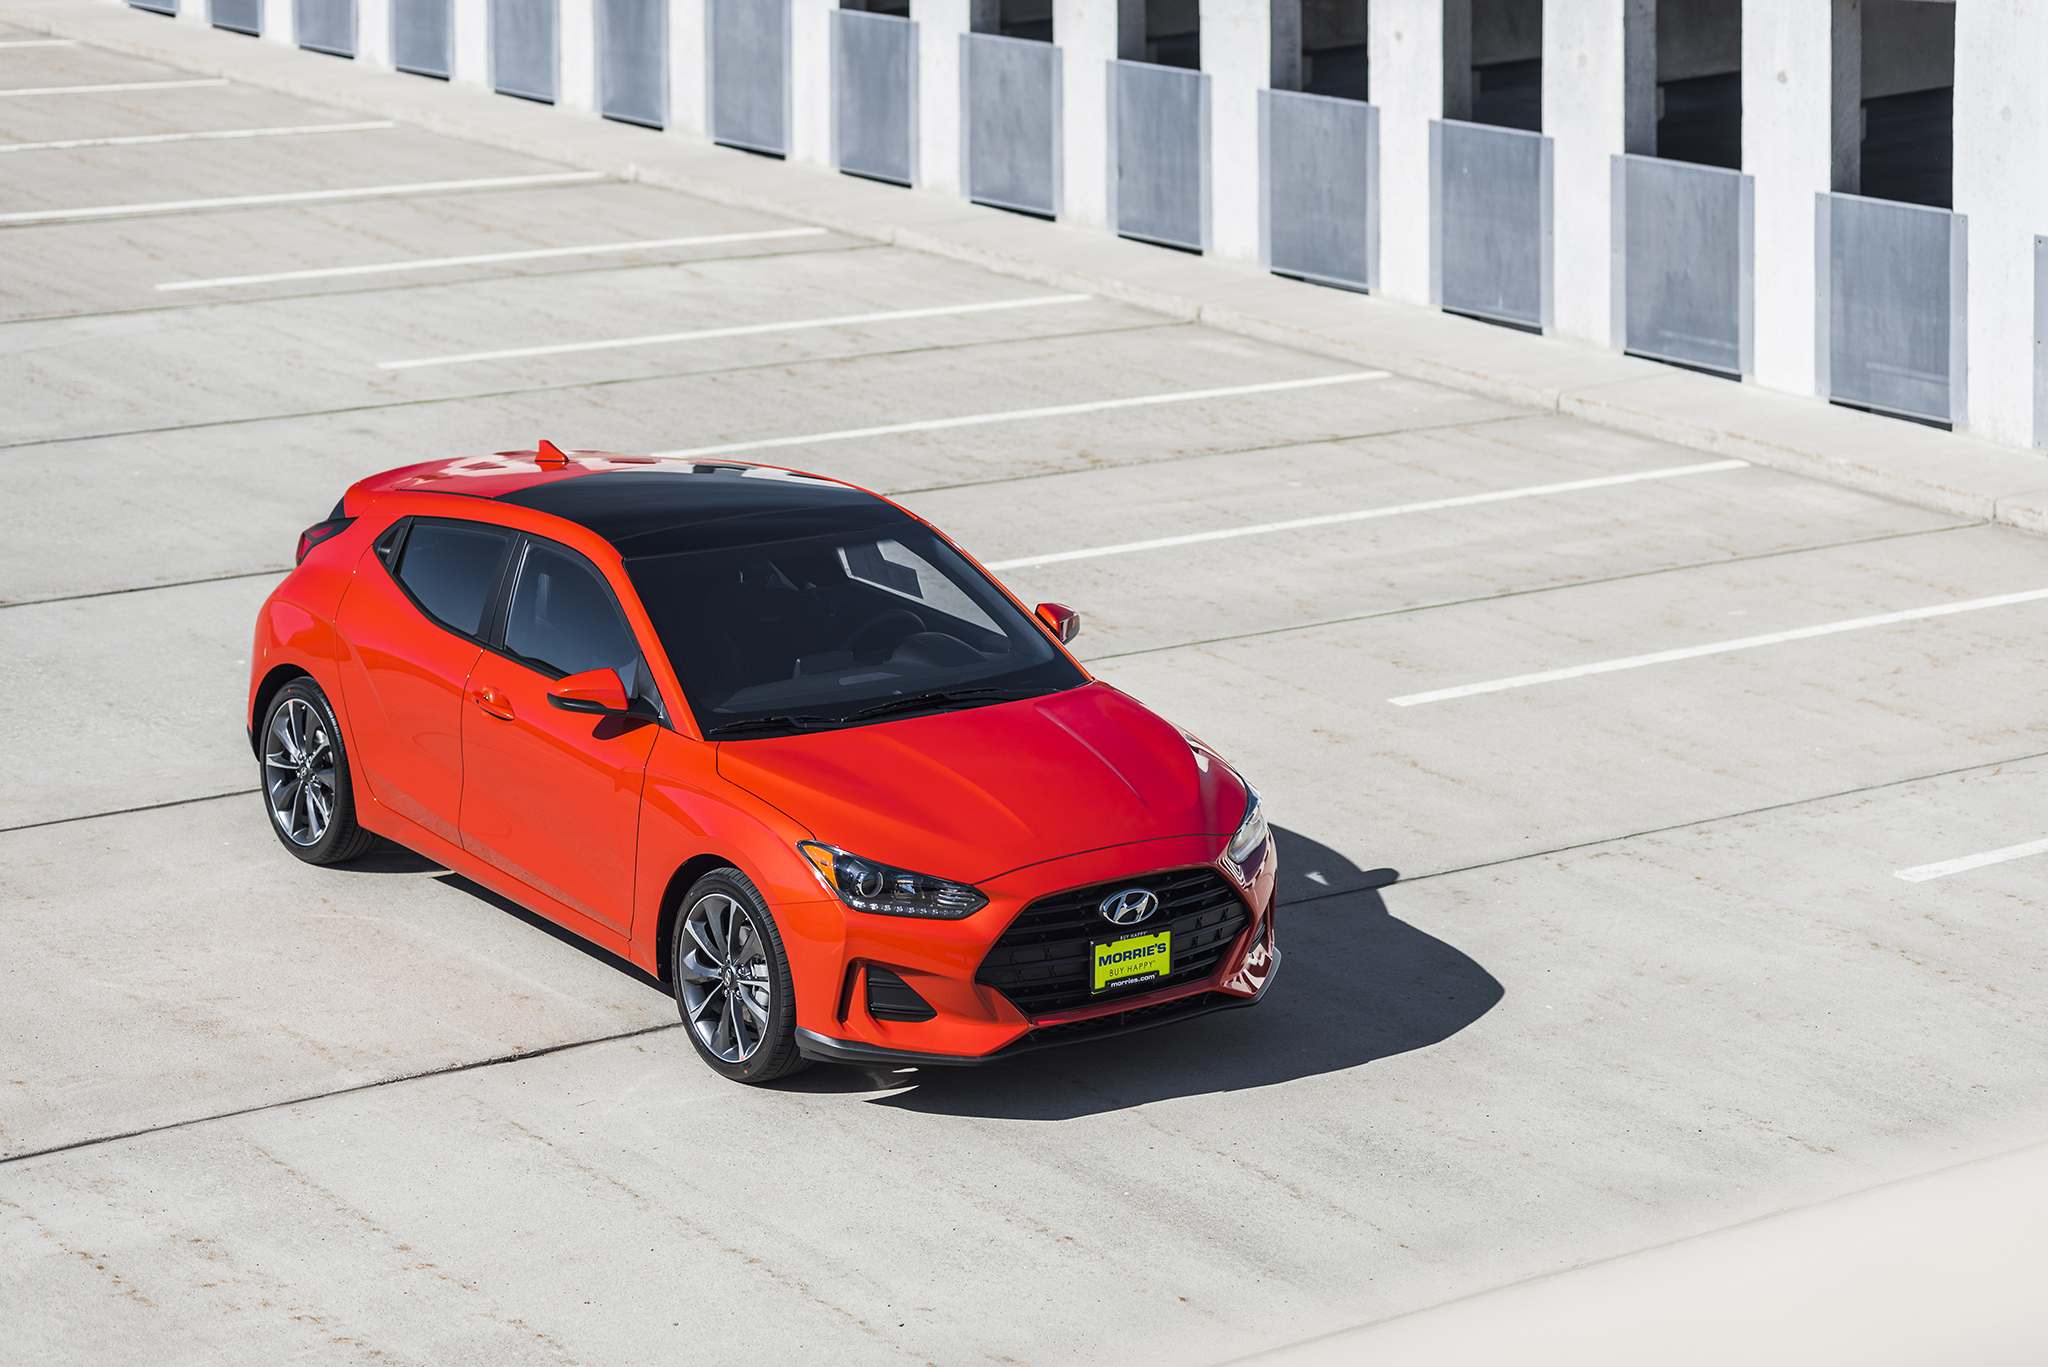 First Impressions Substance And Style In The 2019 Hyundai Veloster